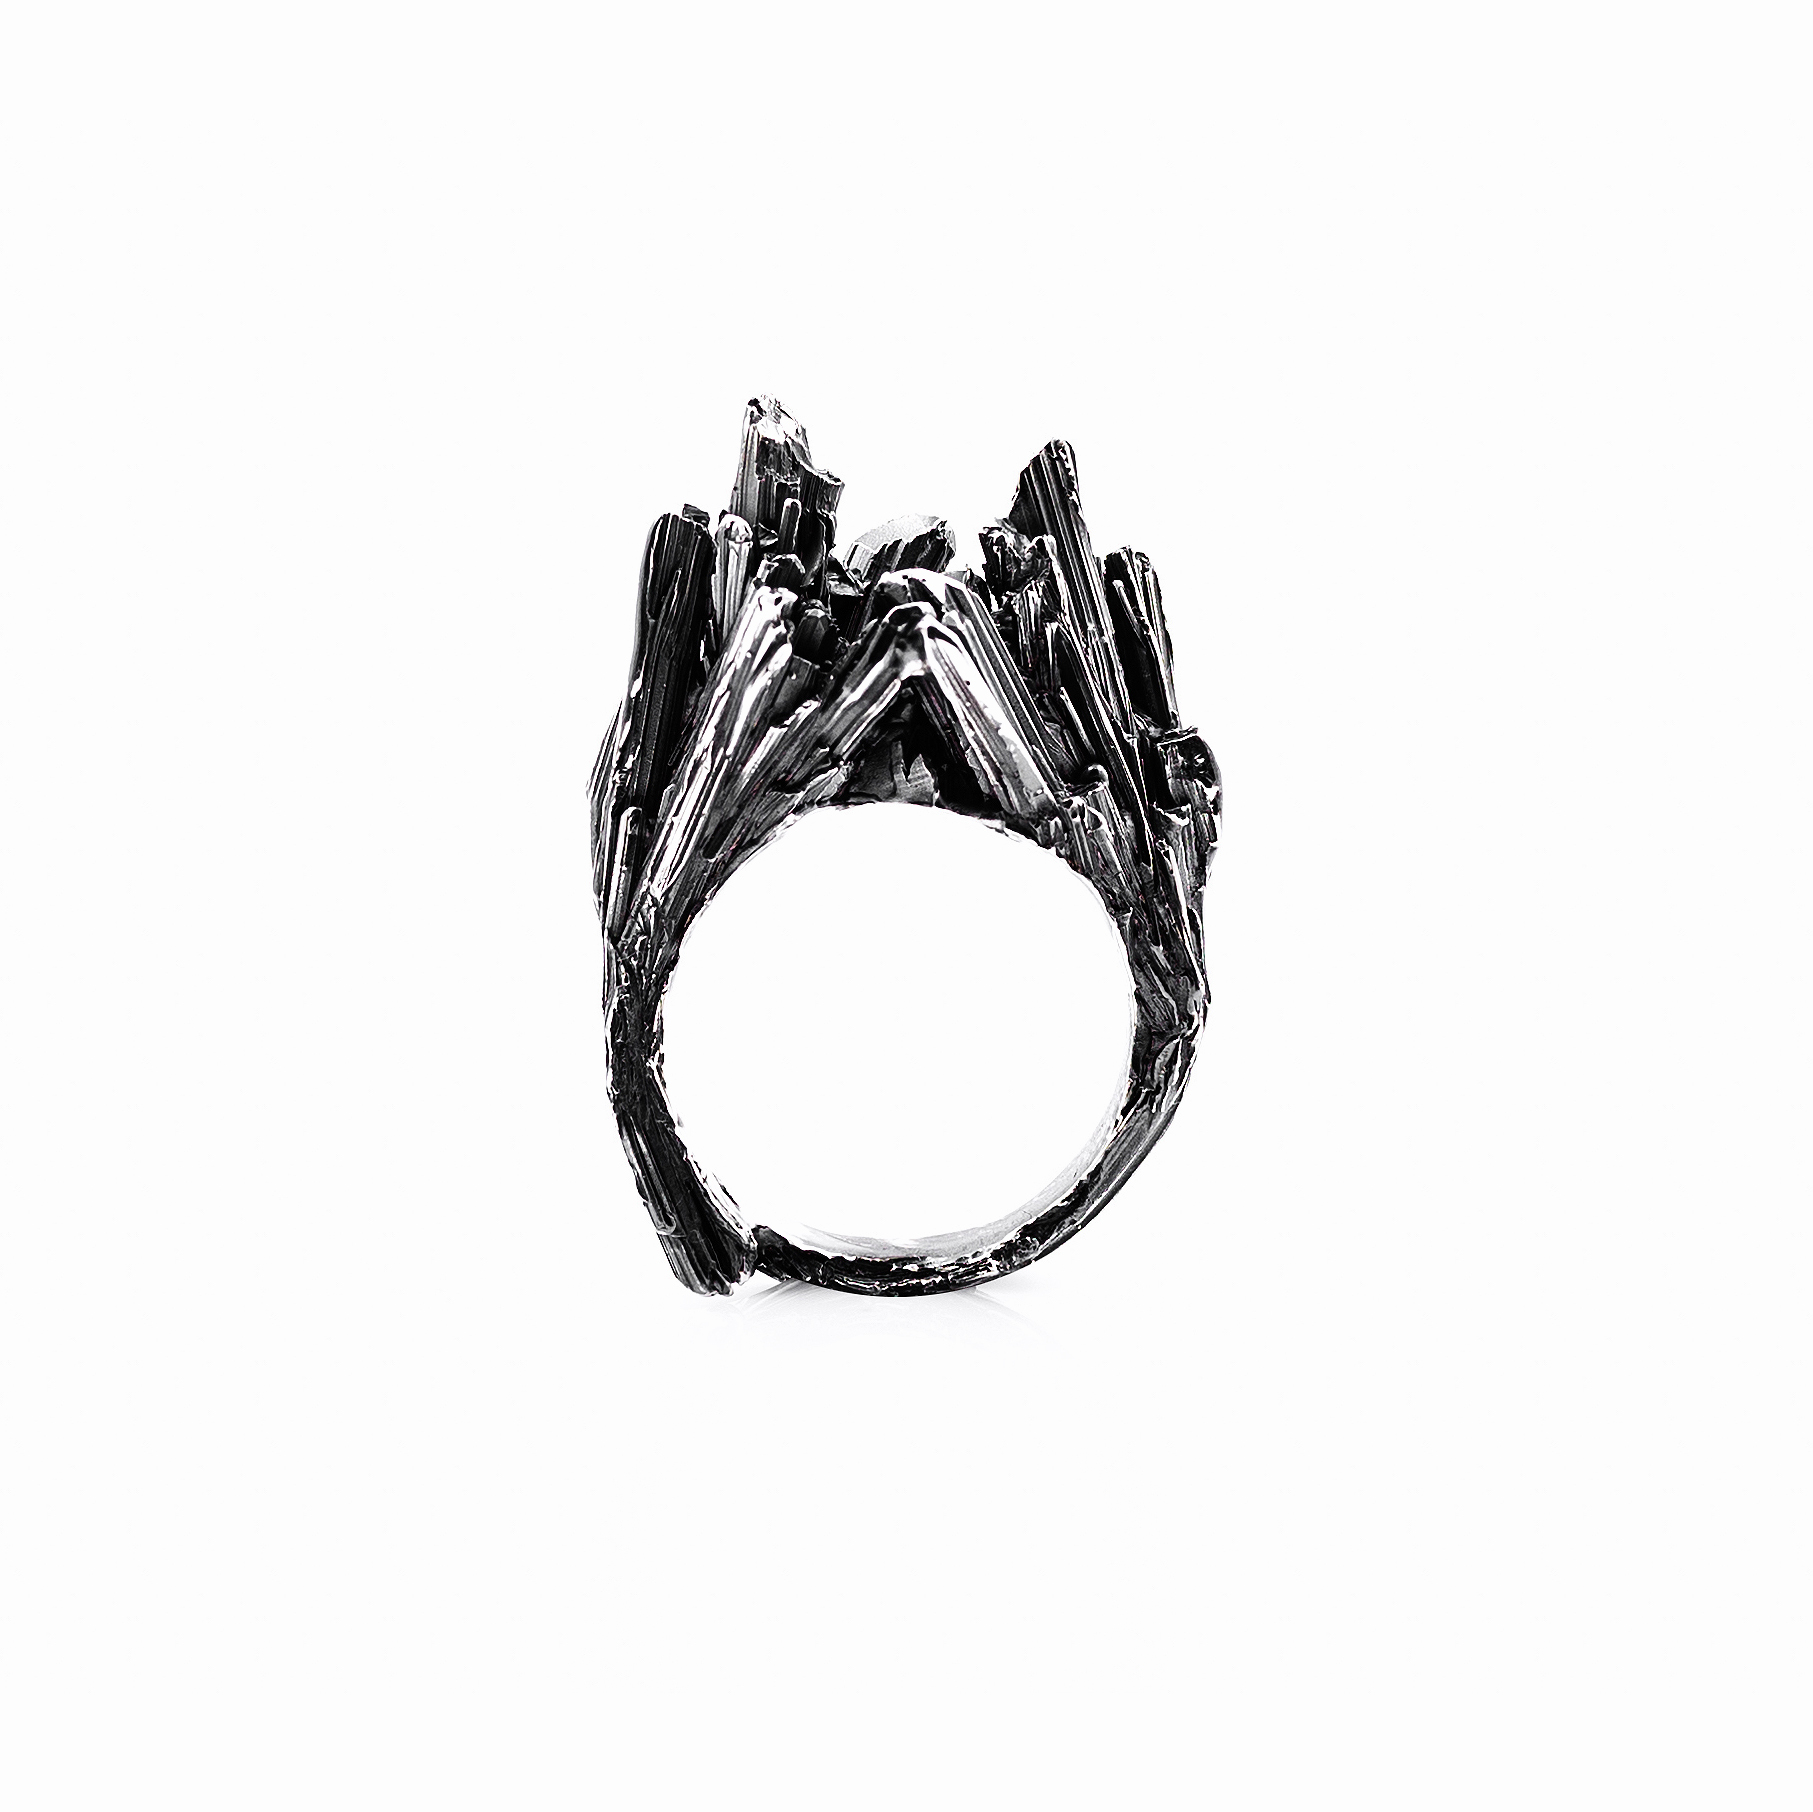 Namazu Ring | Oxidised sterling silver.